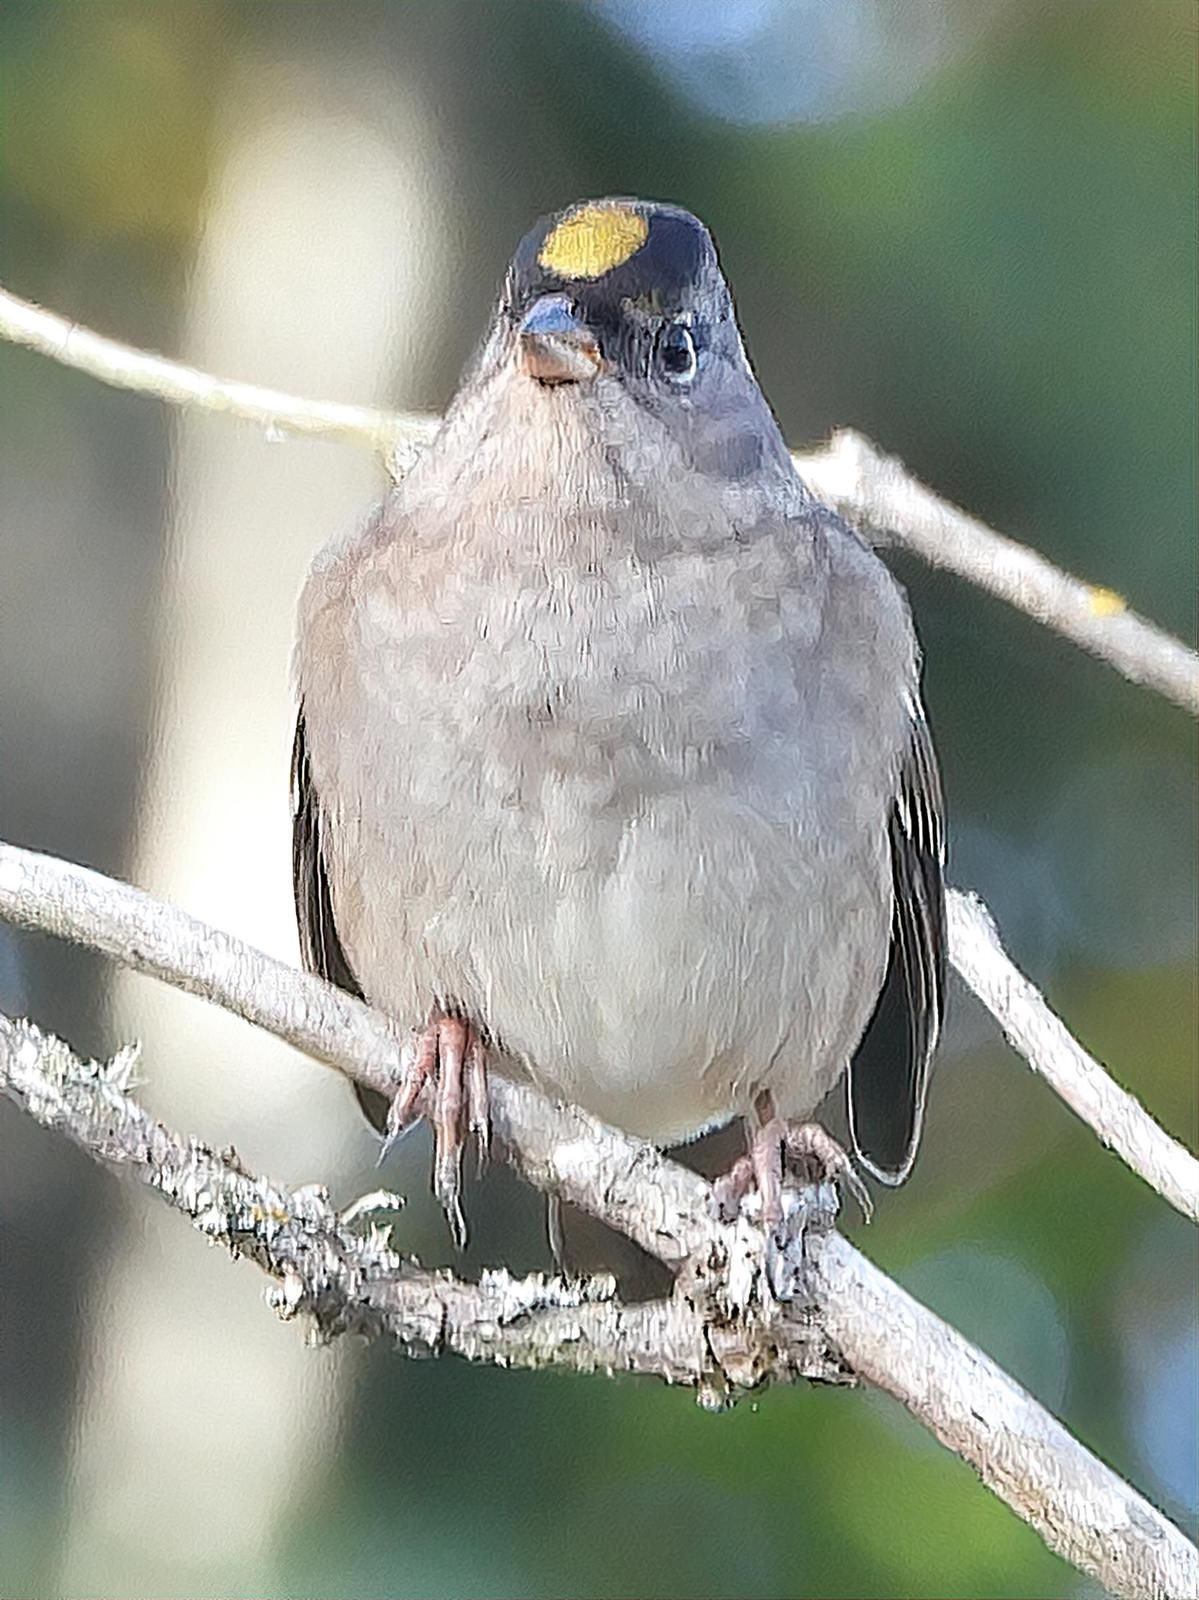 Golden-crowned Sparrow Photo by Dan Tallman